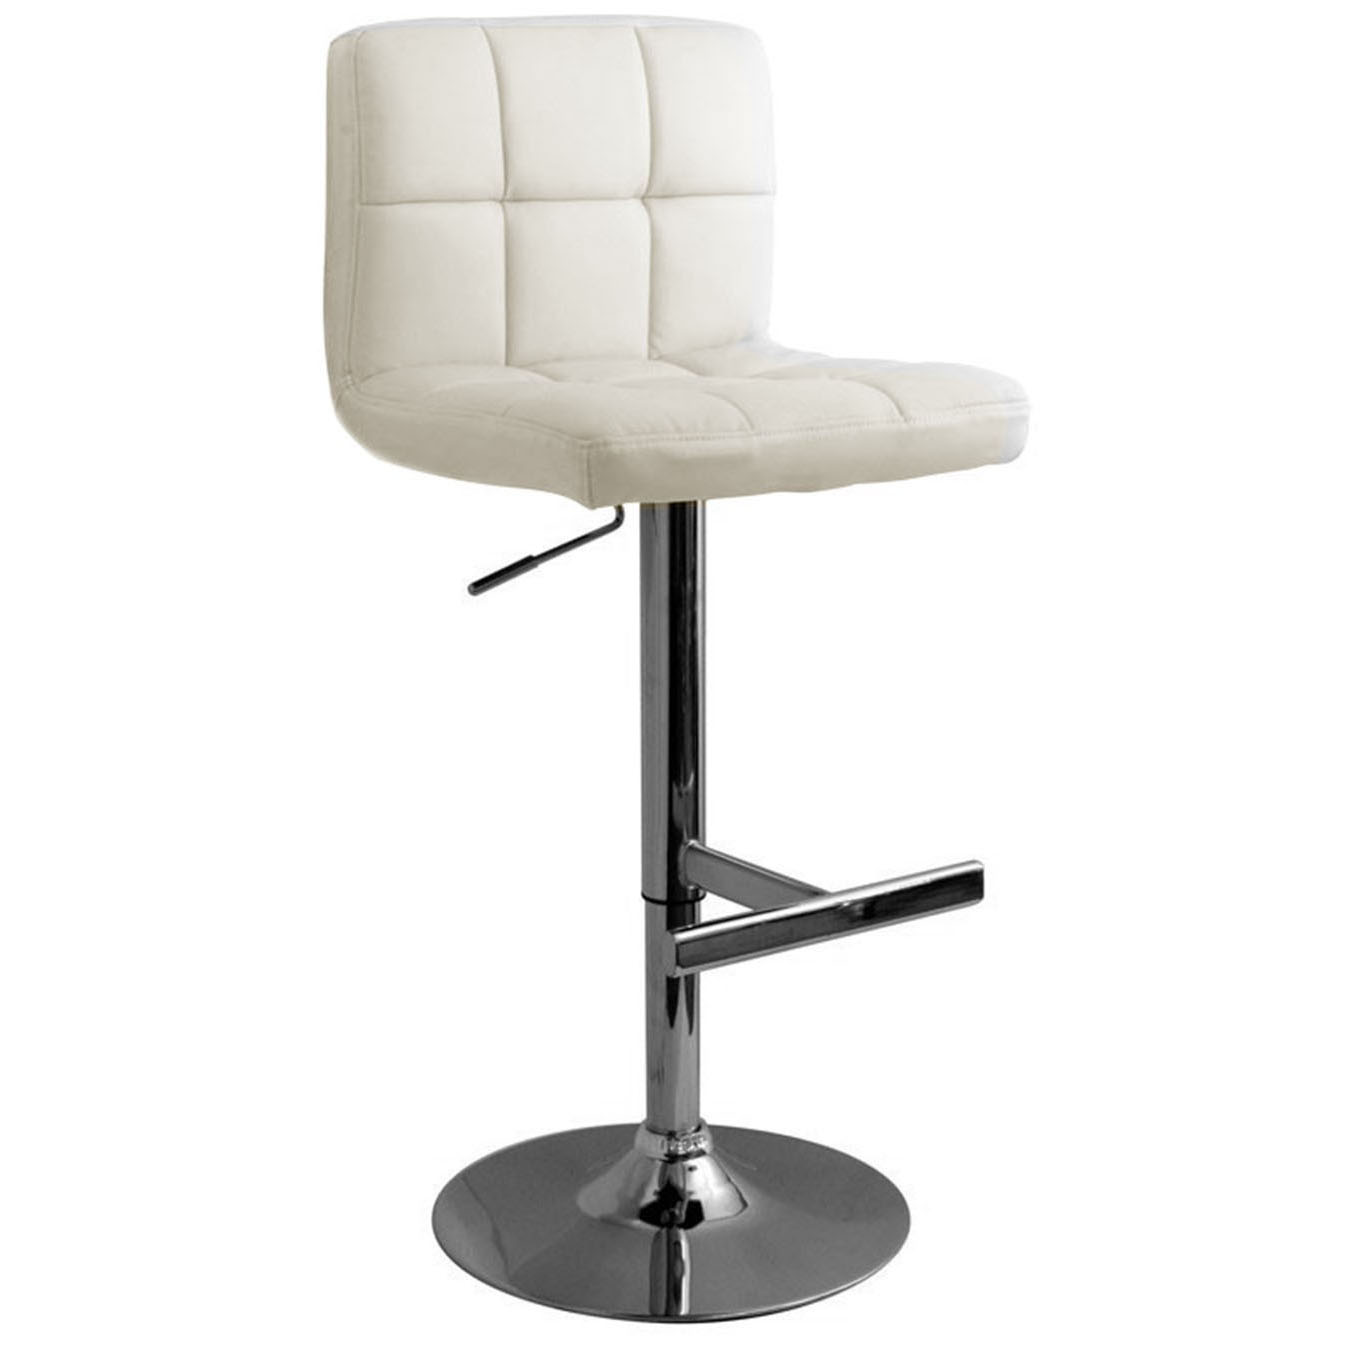 Allegro Leather Brushed Bar Stool - White